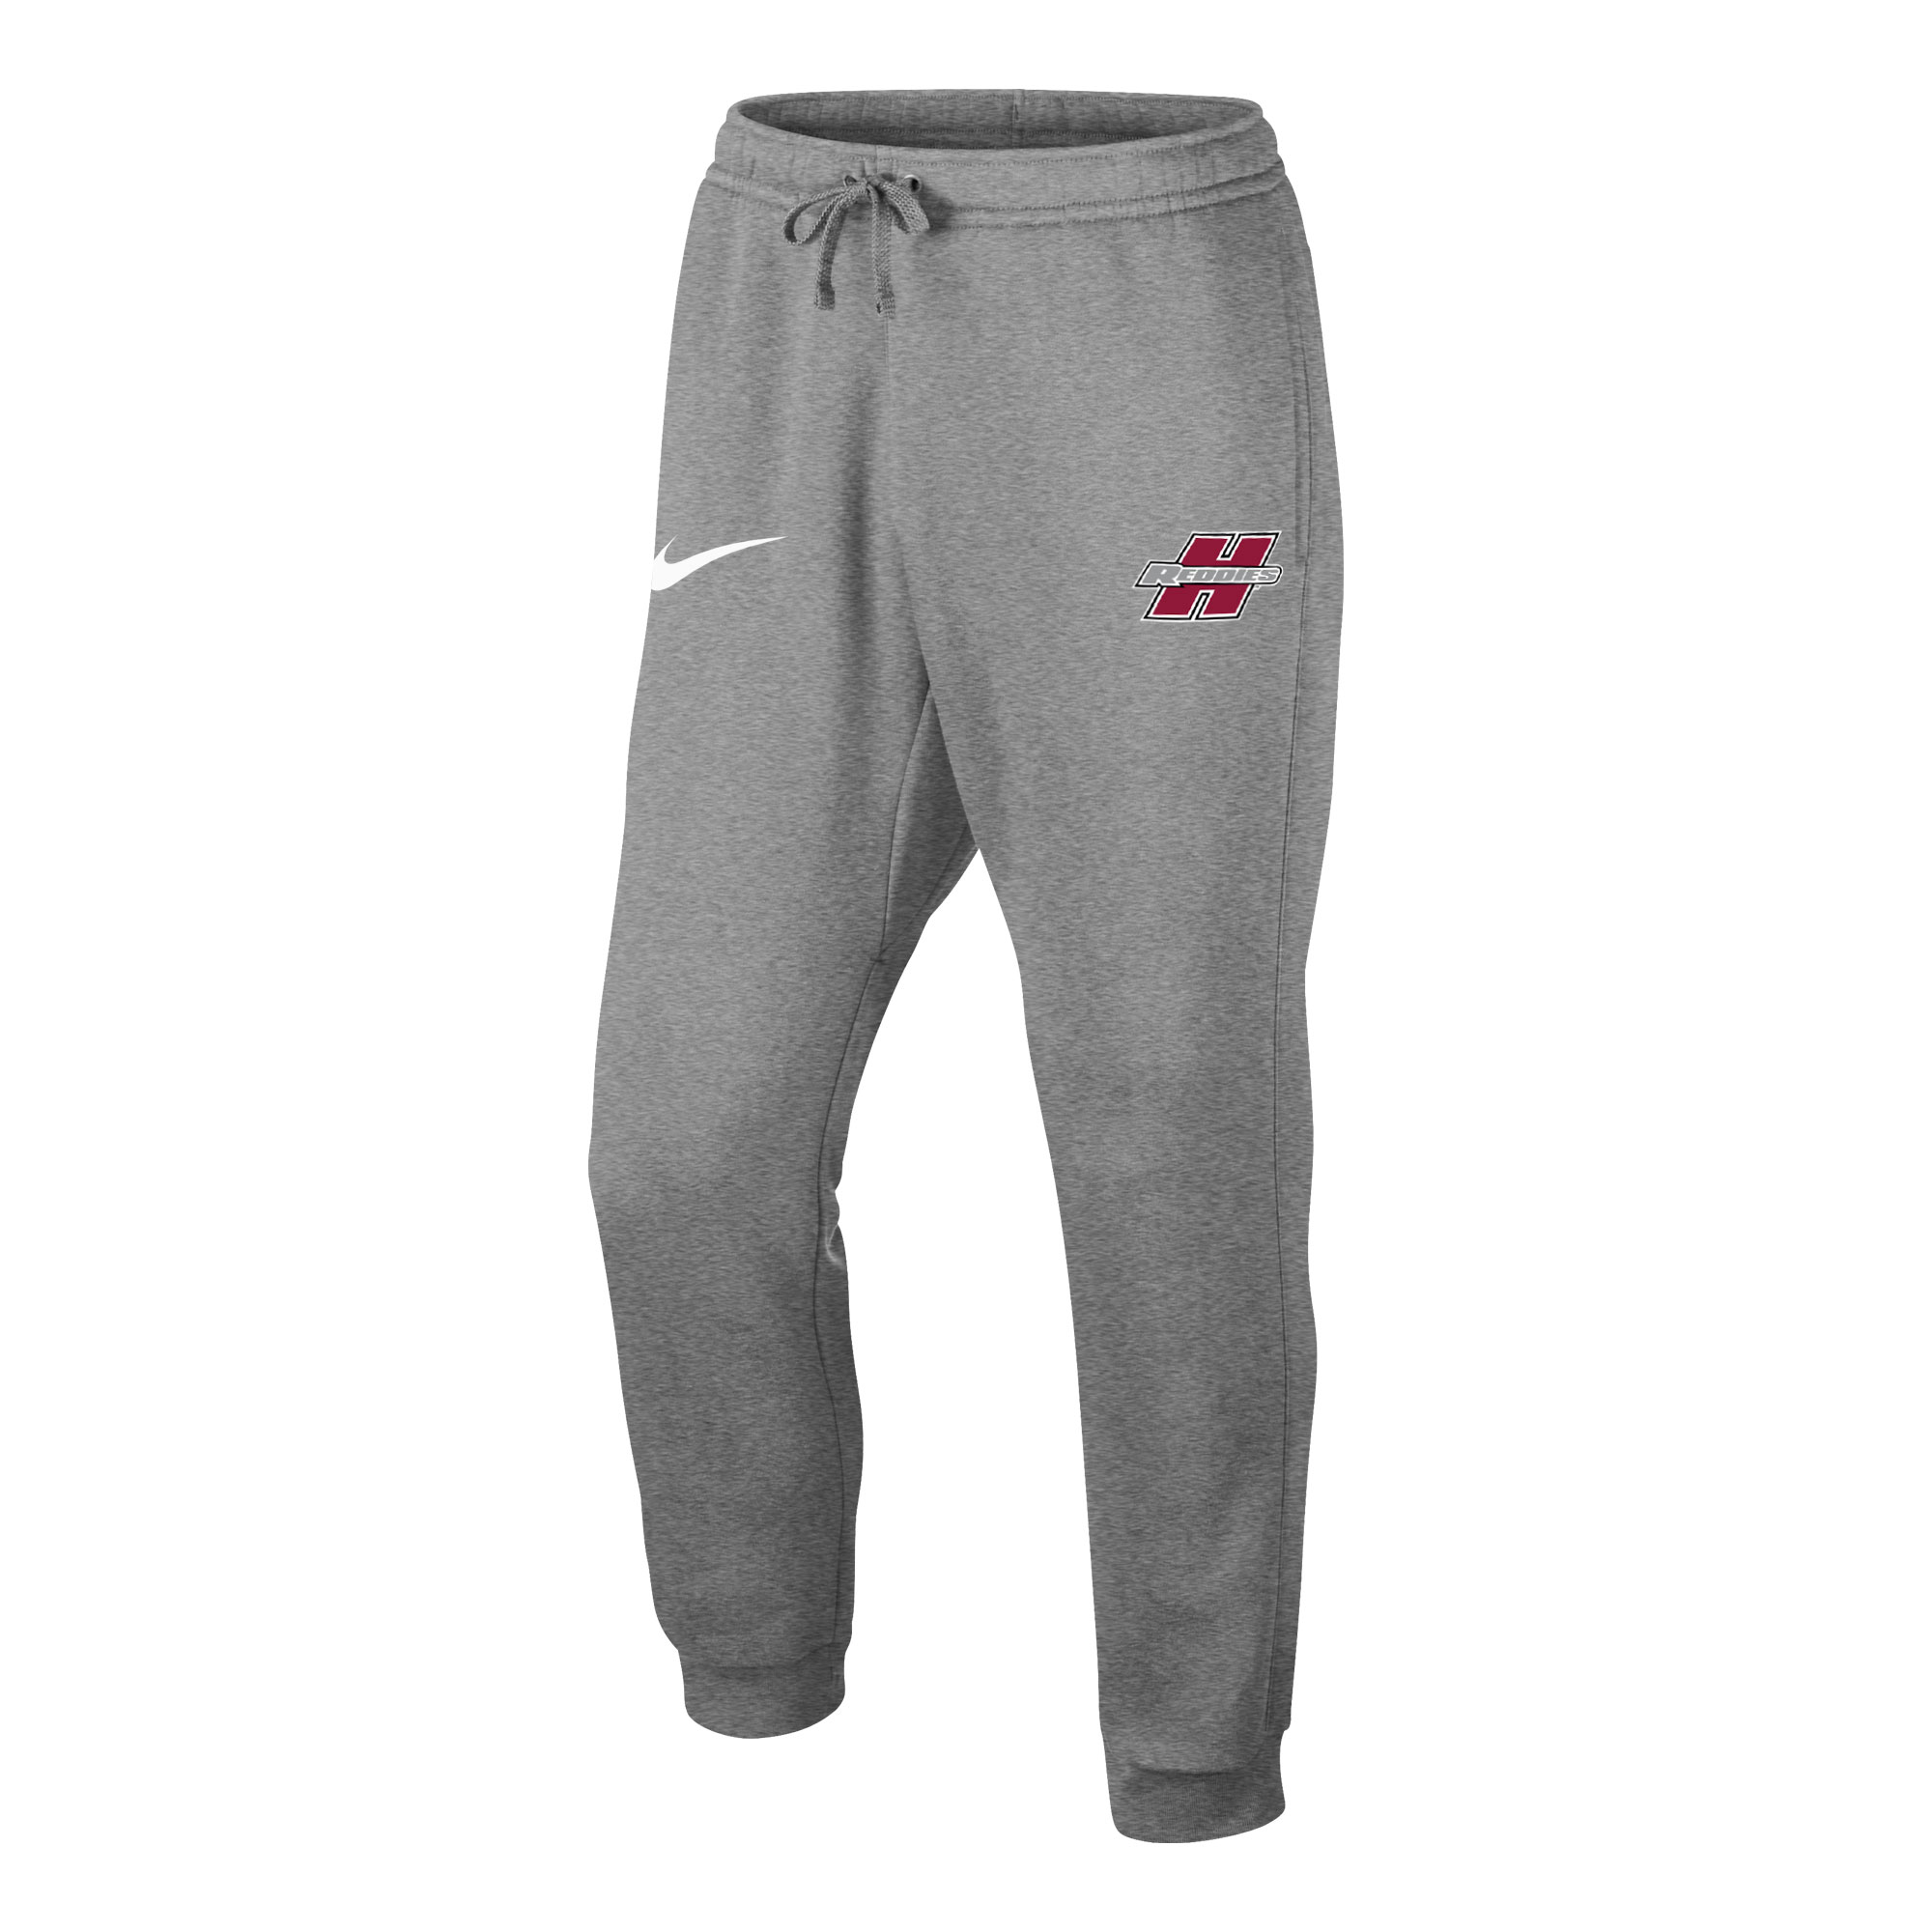 Henderson Reddies Nike Men's Fleece Jogger Pant